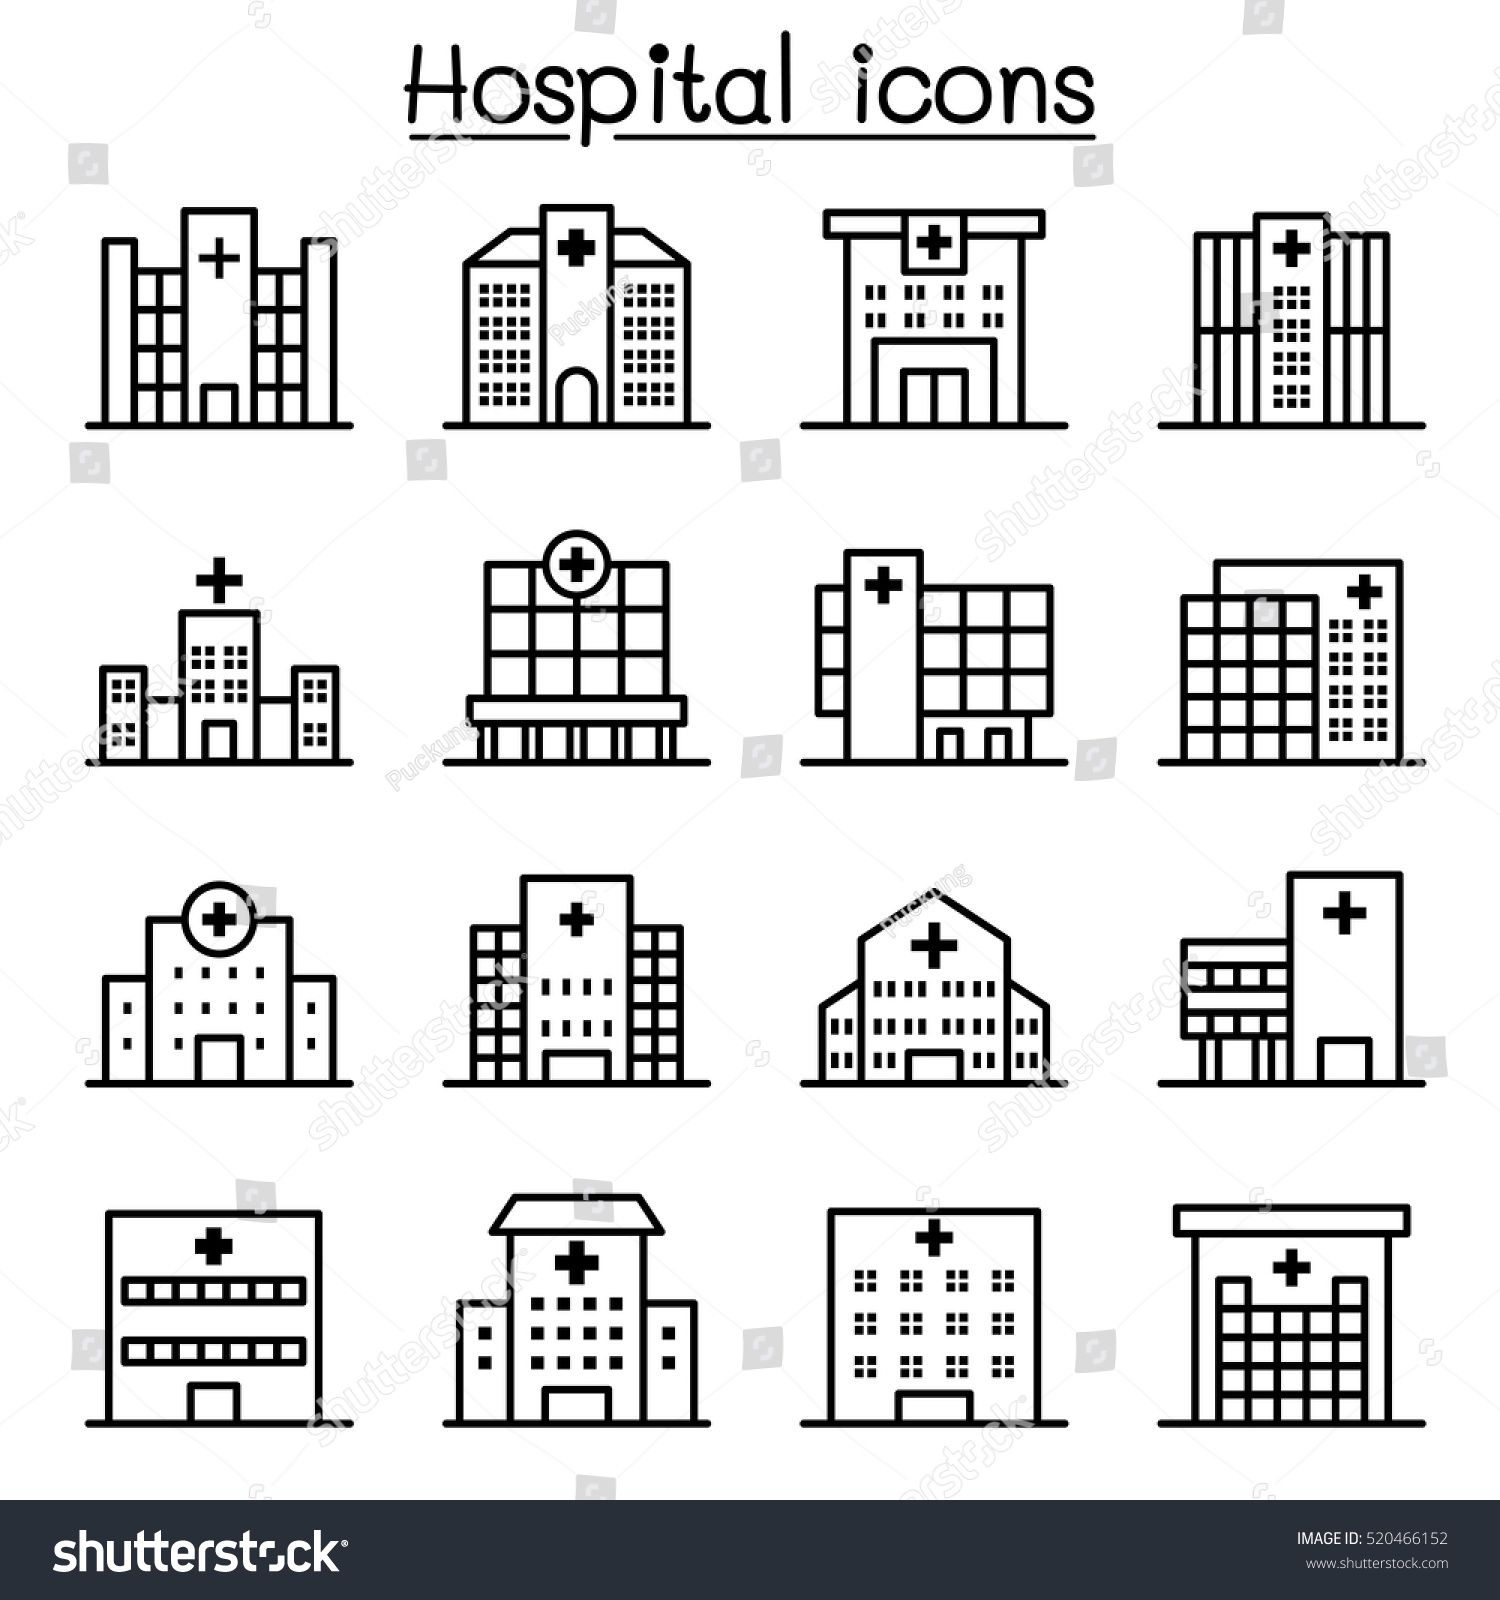 Hospital Building Icon Set In Thin Line Style Ad Affiliate Icon Building Hospital Set Hospital Icon Building Icon Wedding Vector Icons